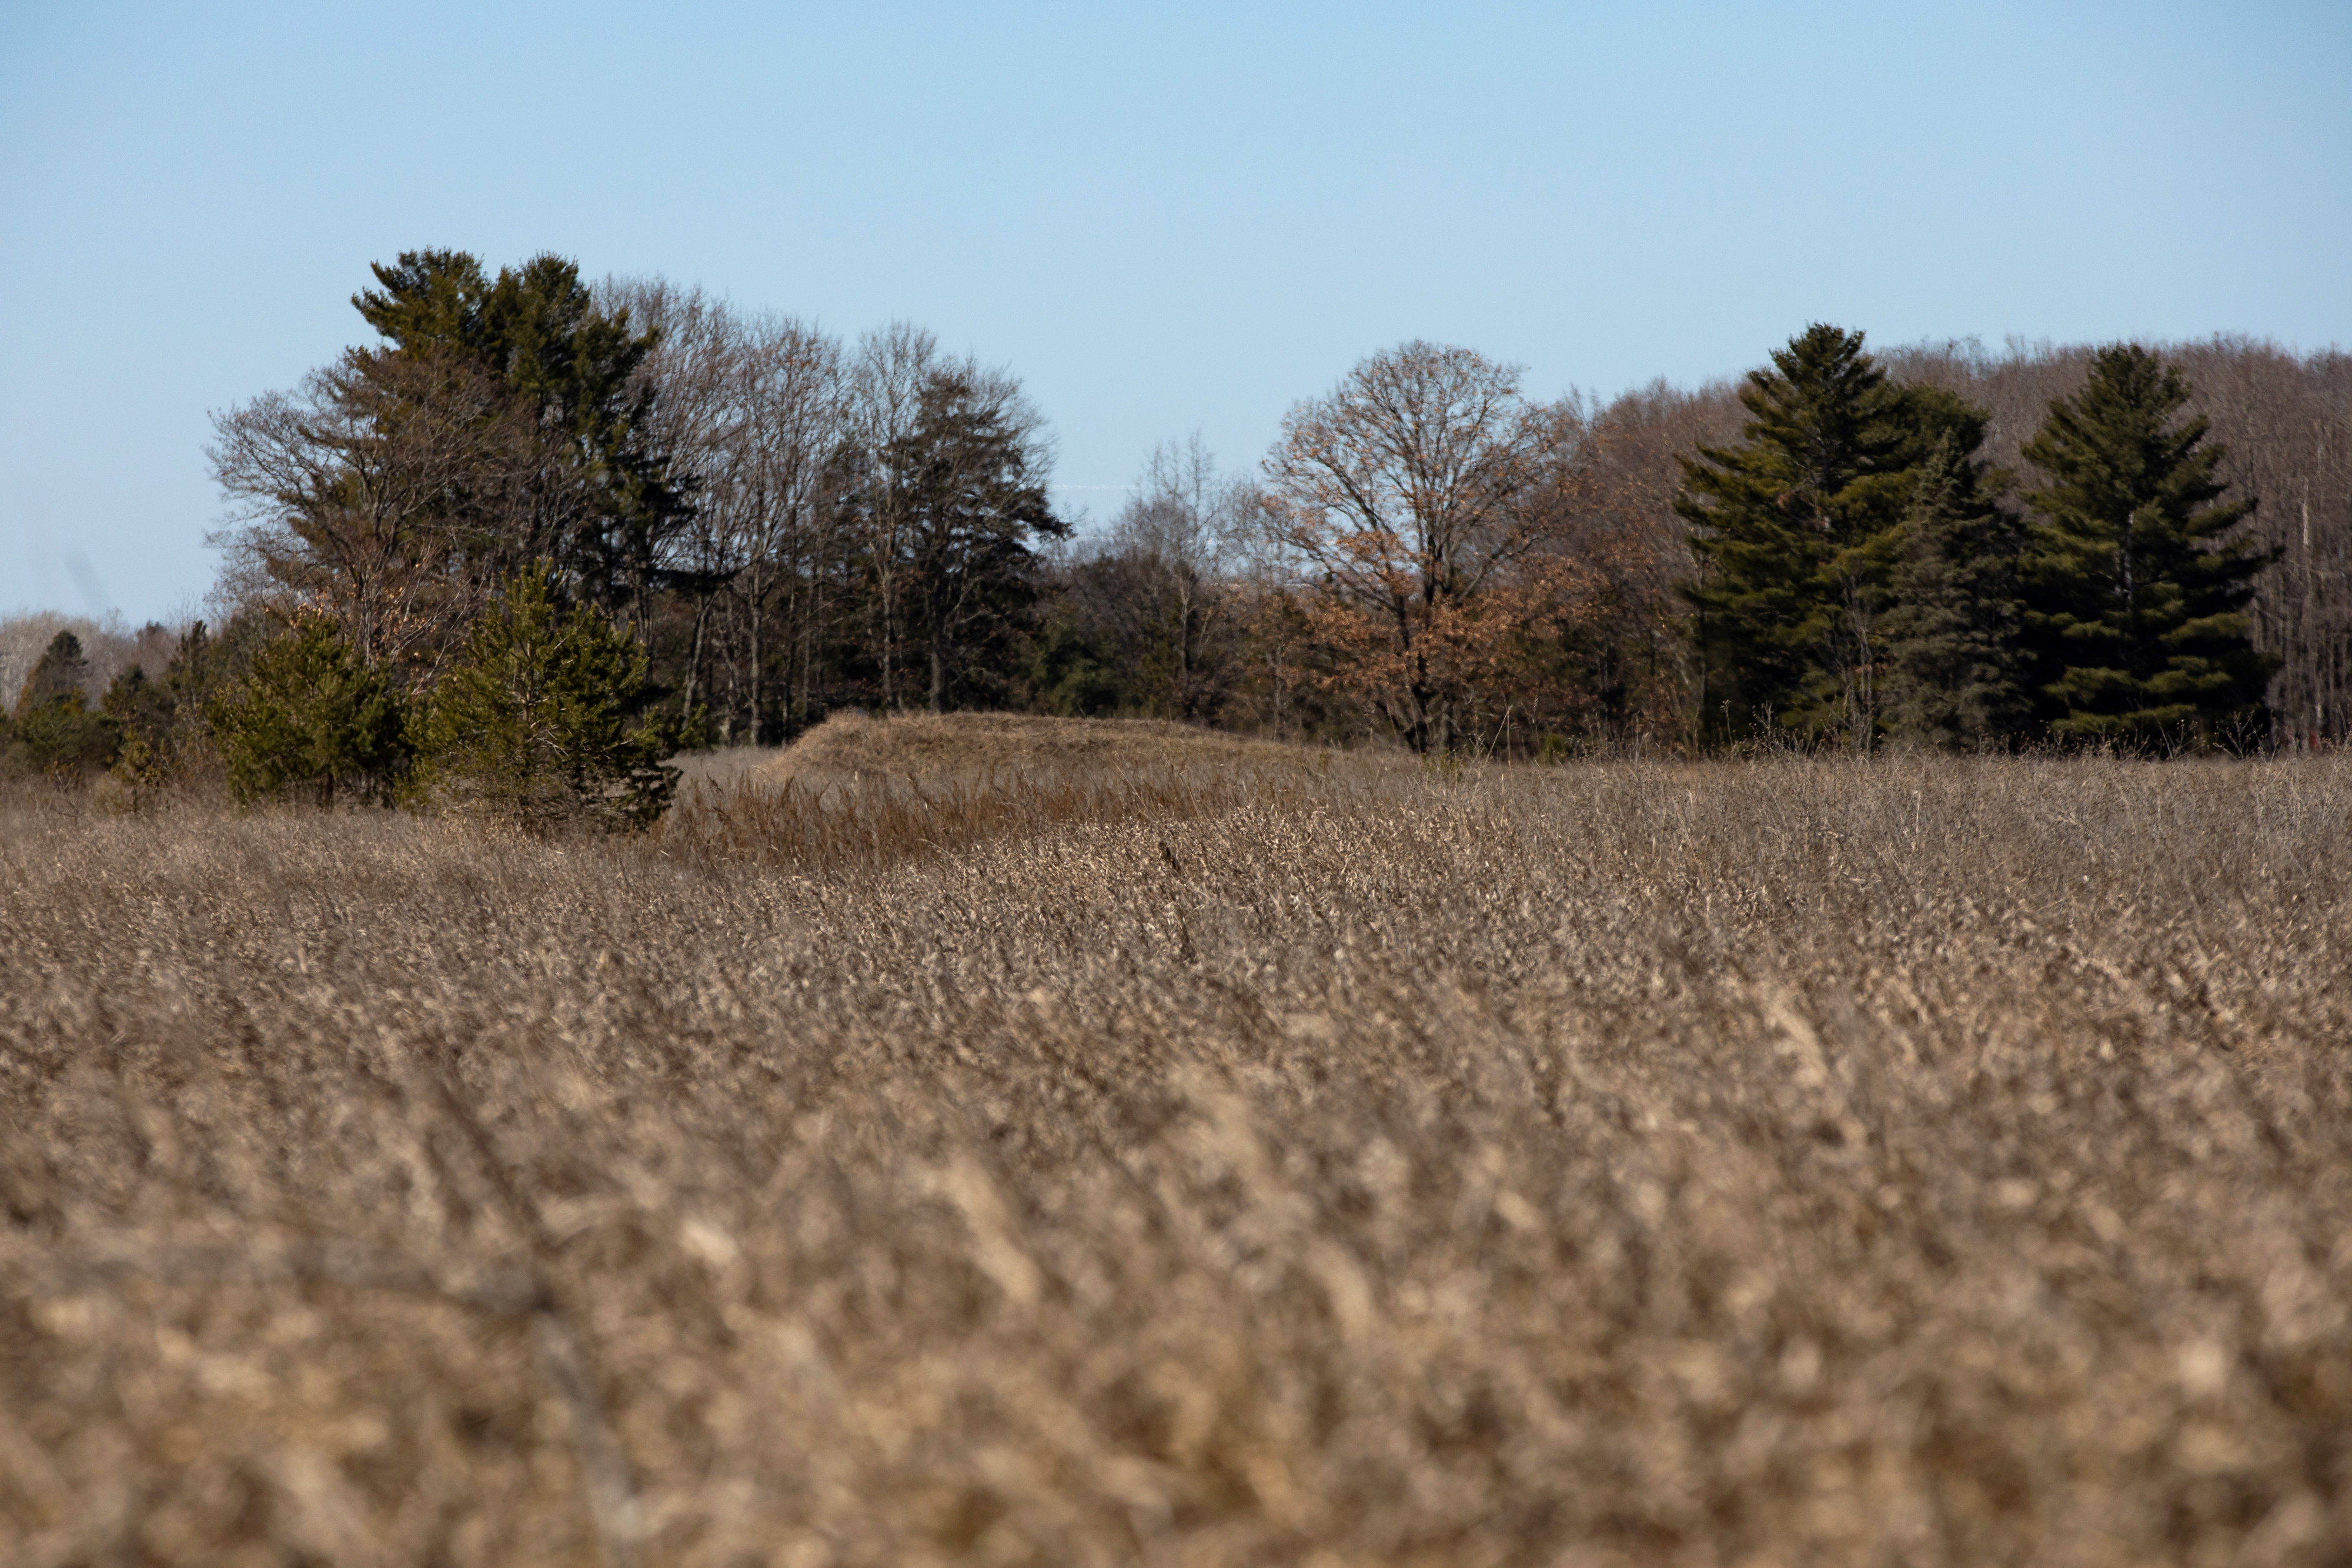 A piece of land that has a federal drilling lease issued for oil and gas development is seen in Mecosta County, Michigan, U.S., March 20, 2021. REUTERS/Emily Elconin